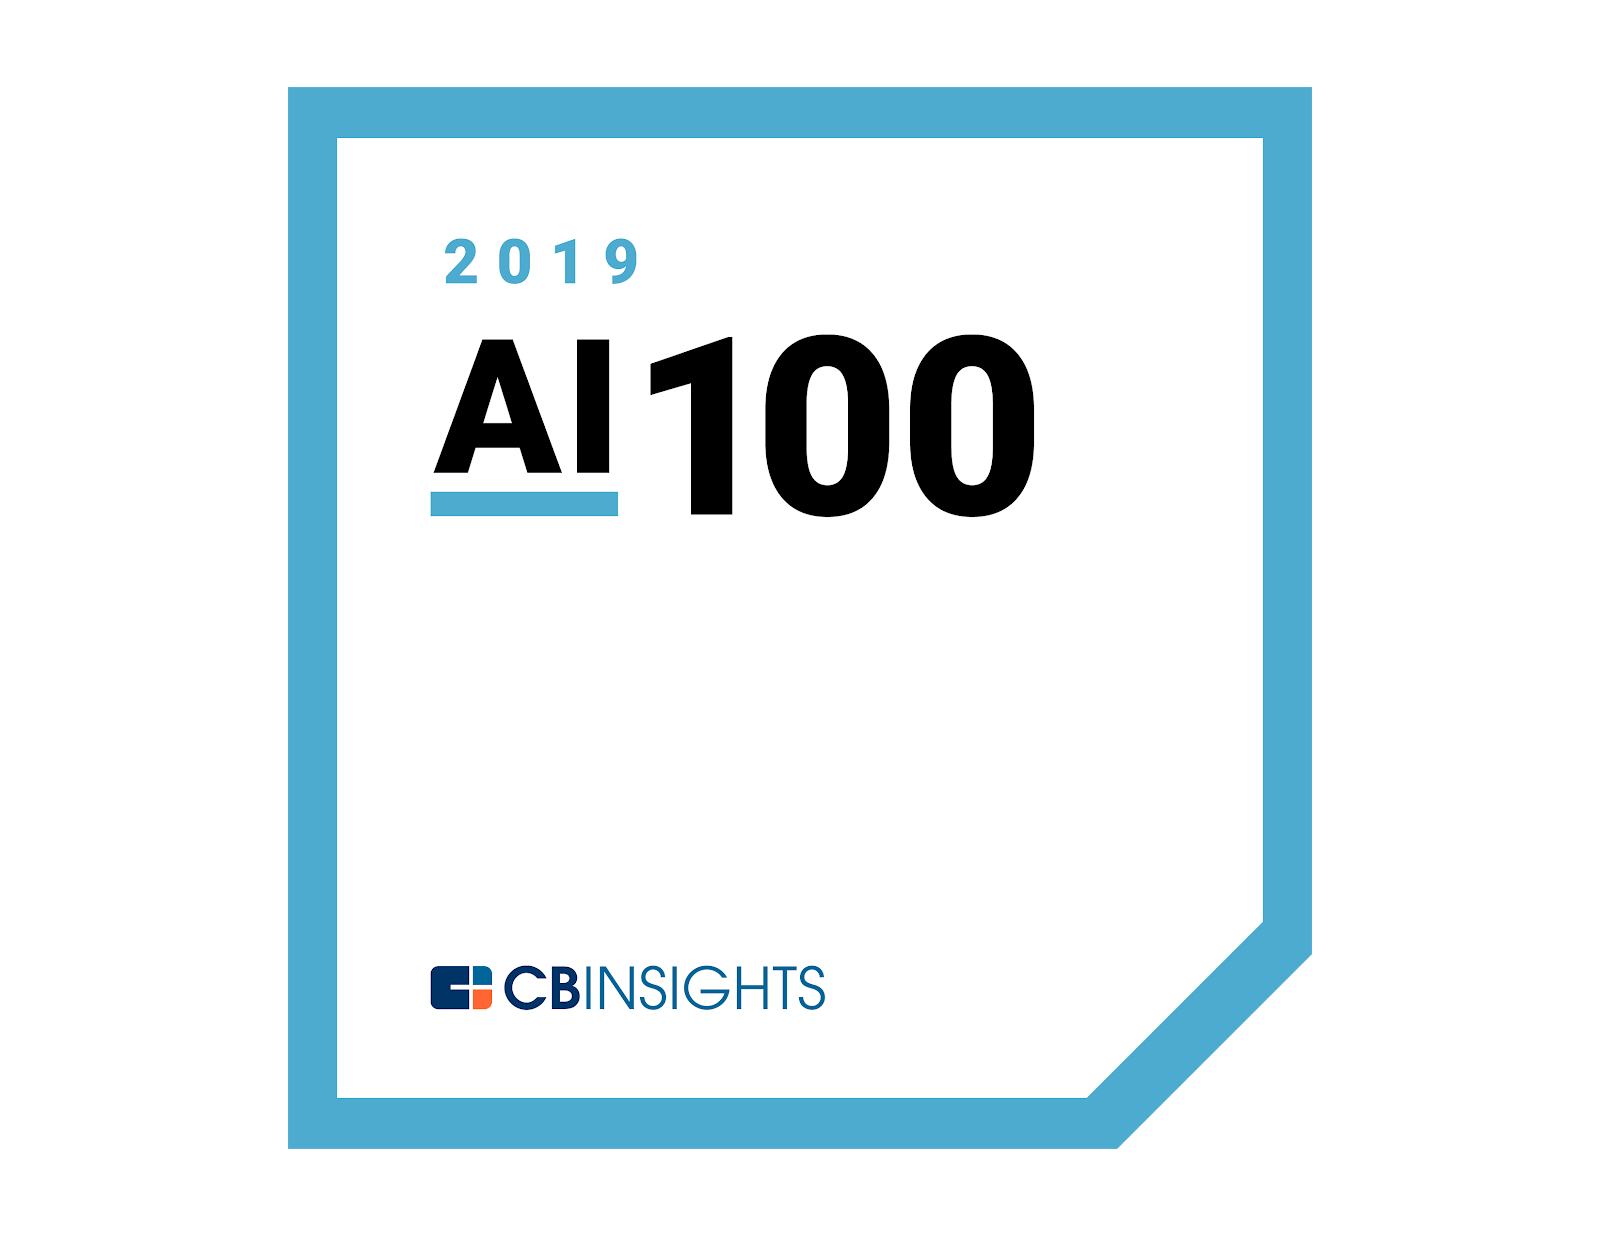 100 most promising privately-held artificial intelligence (AI) companies in the world